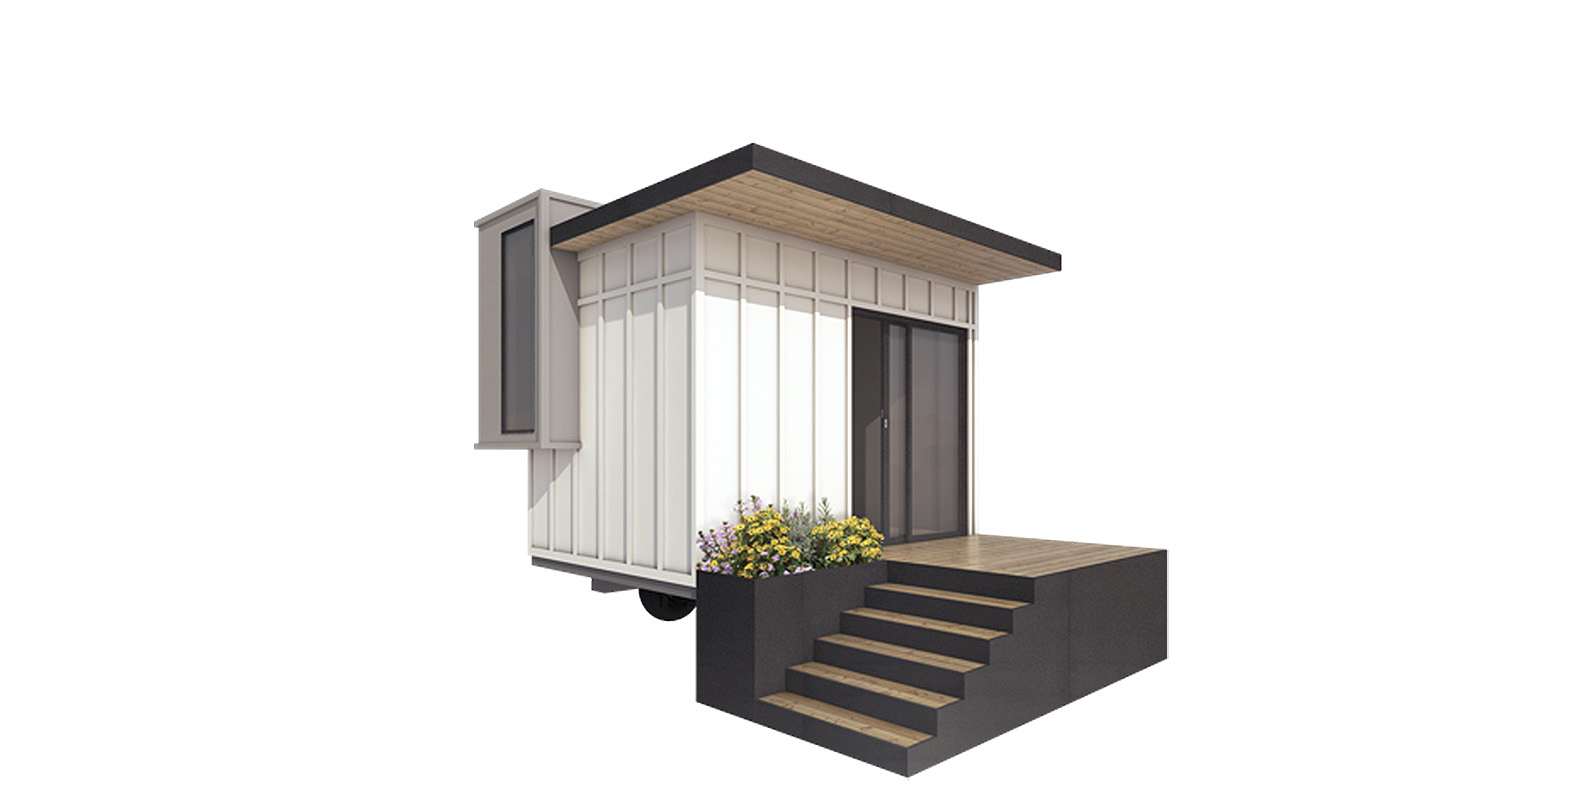 You can build one of these tiny backyard offices in less ...